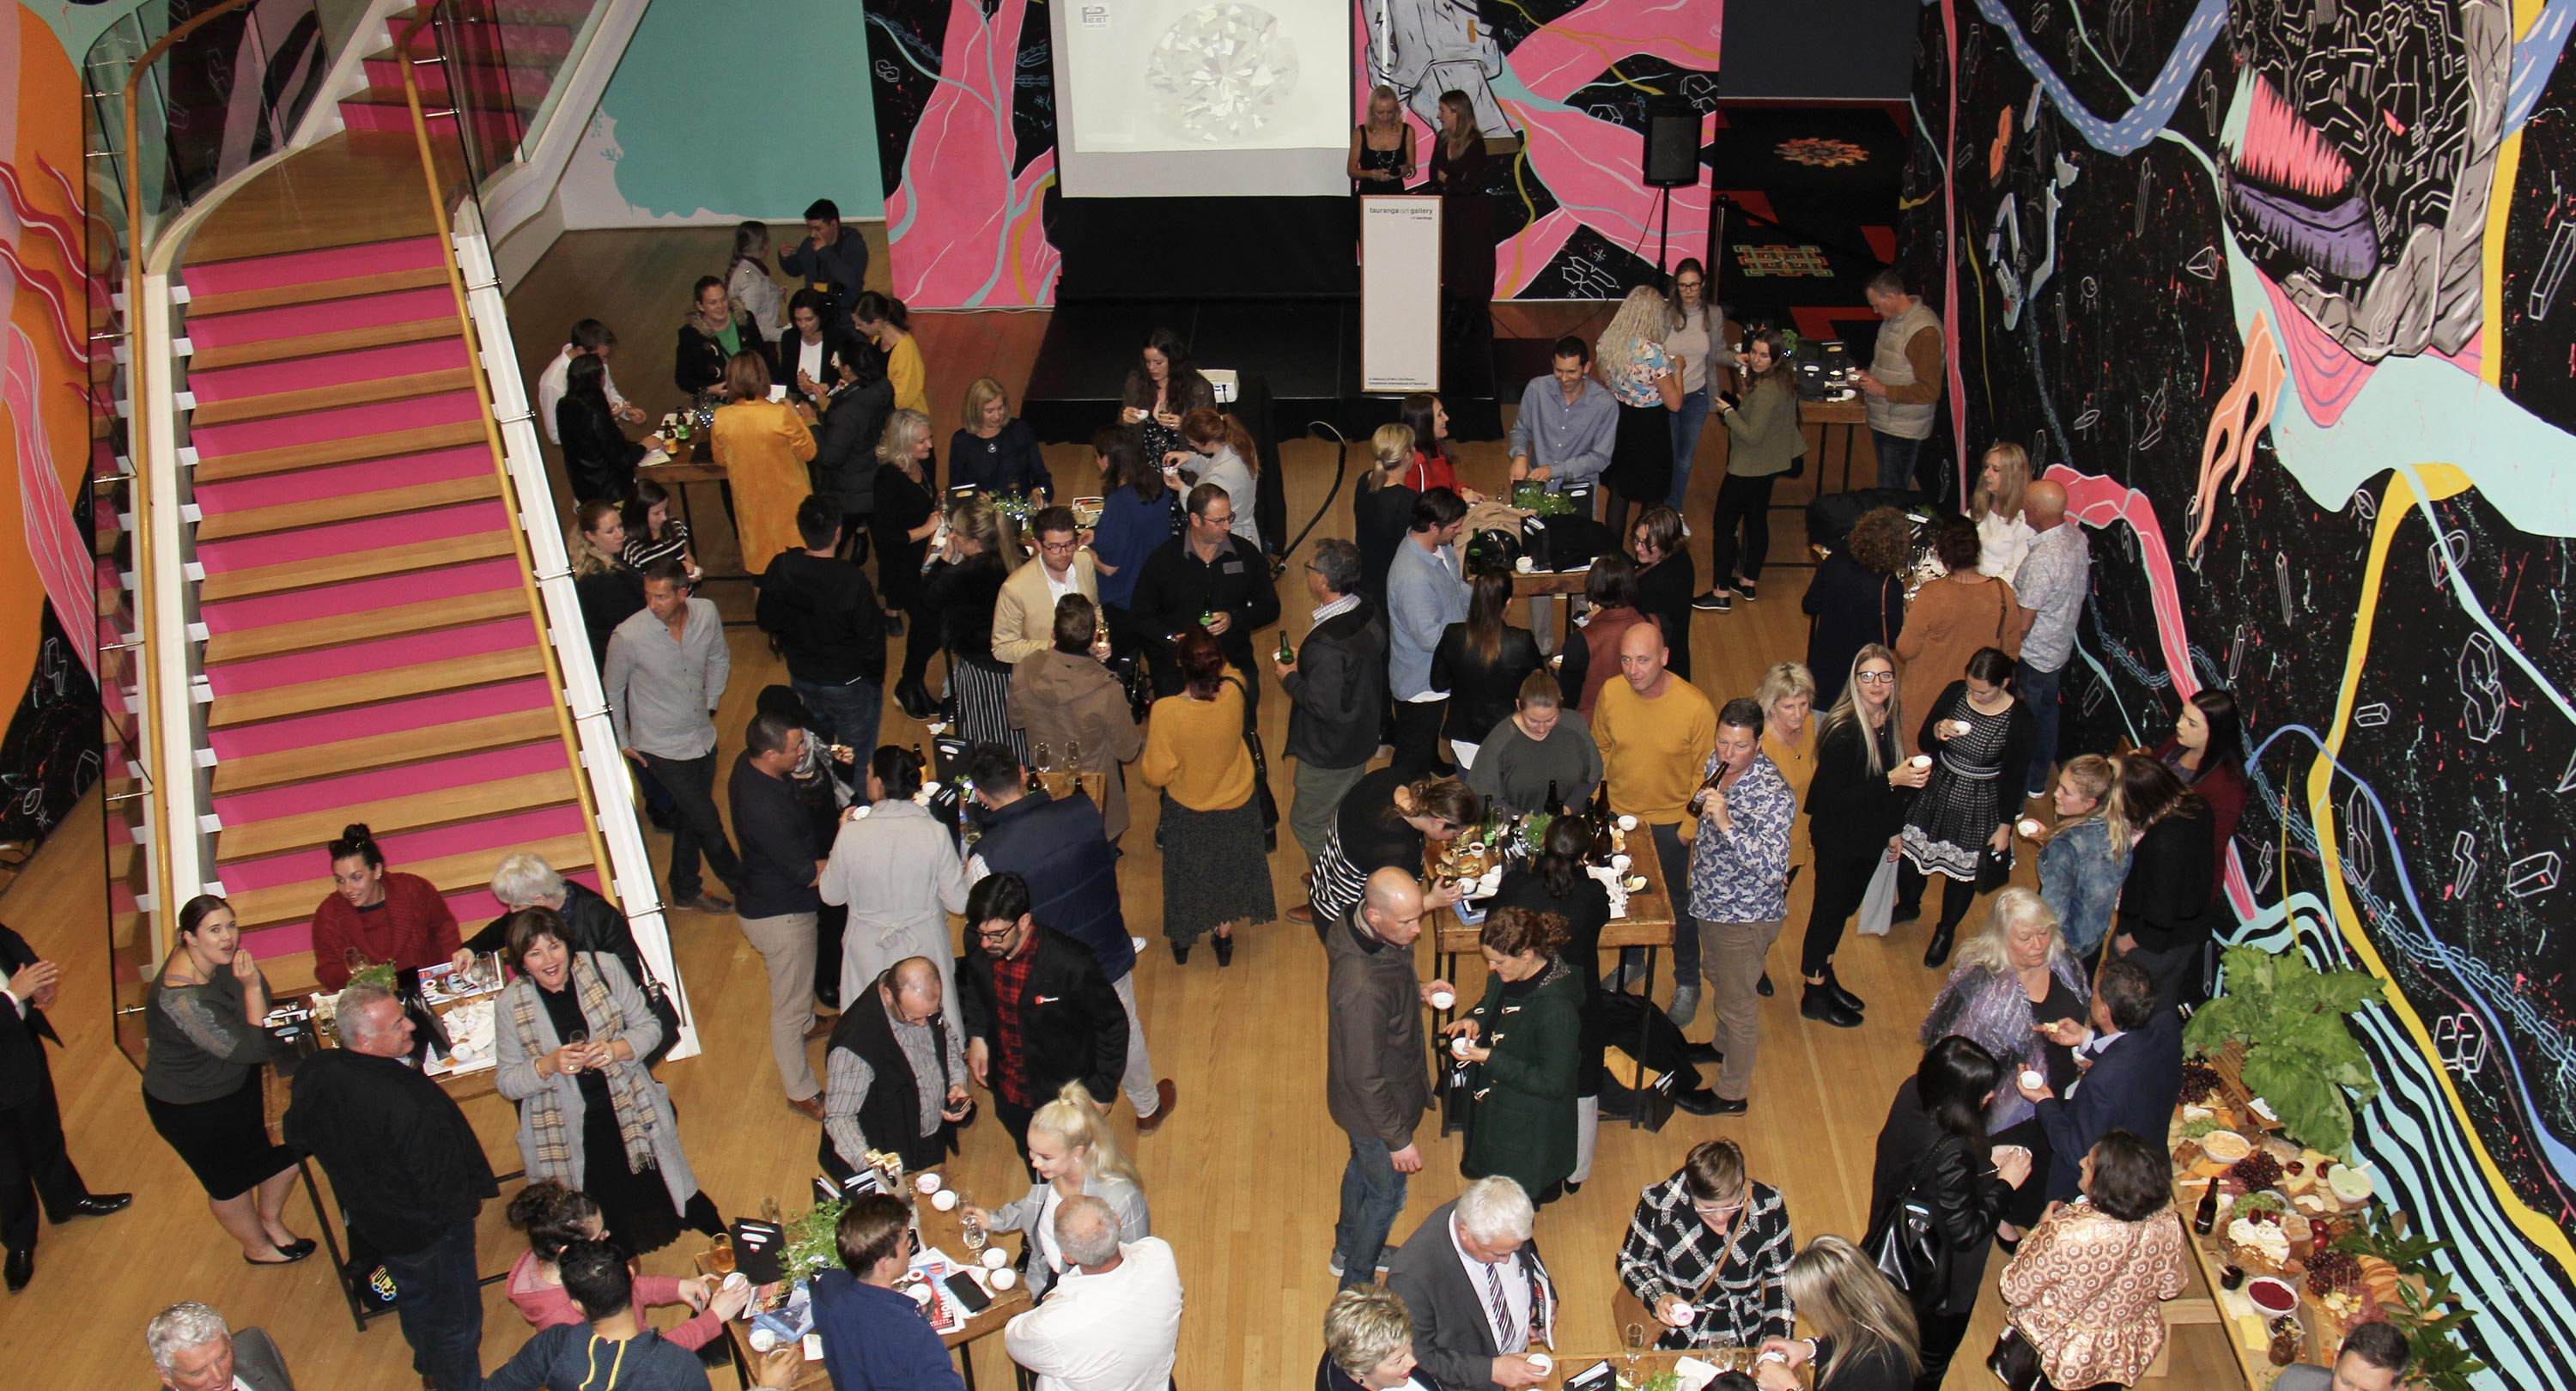 Guests gather and taste food at the opening night of Taste Tauranga